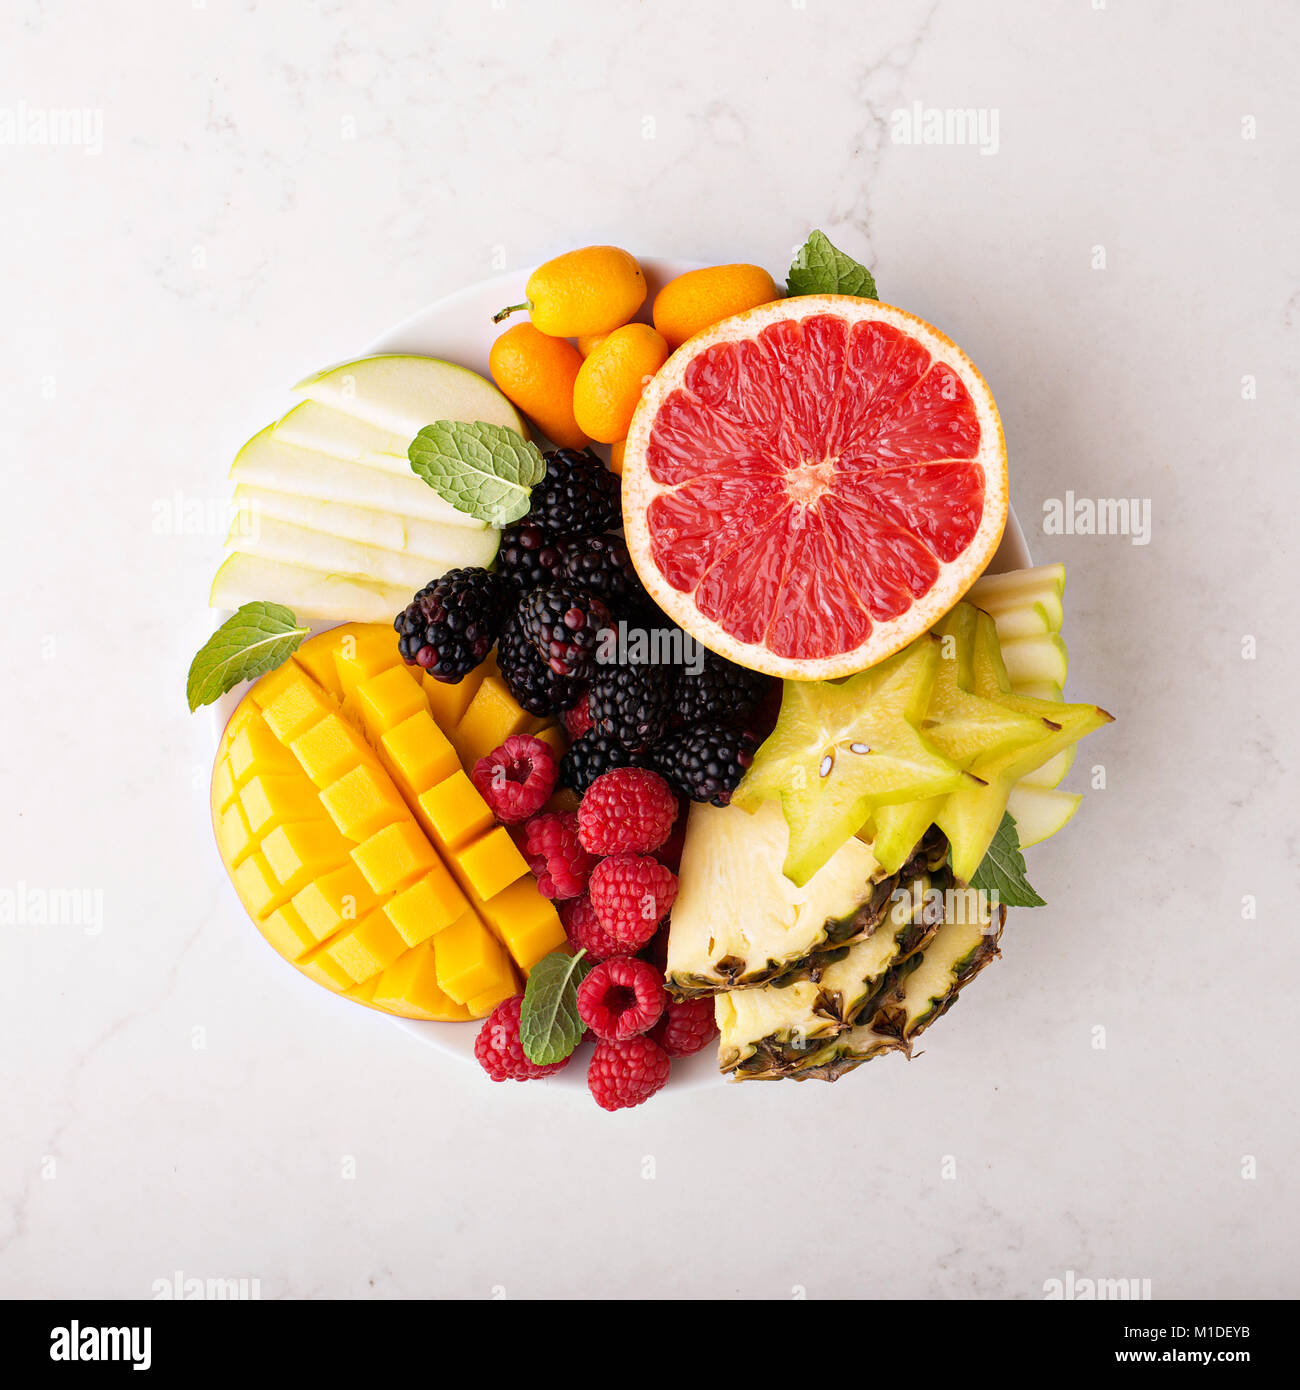 Fruit plate with mango, grapefruit and berries - Stock Image